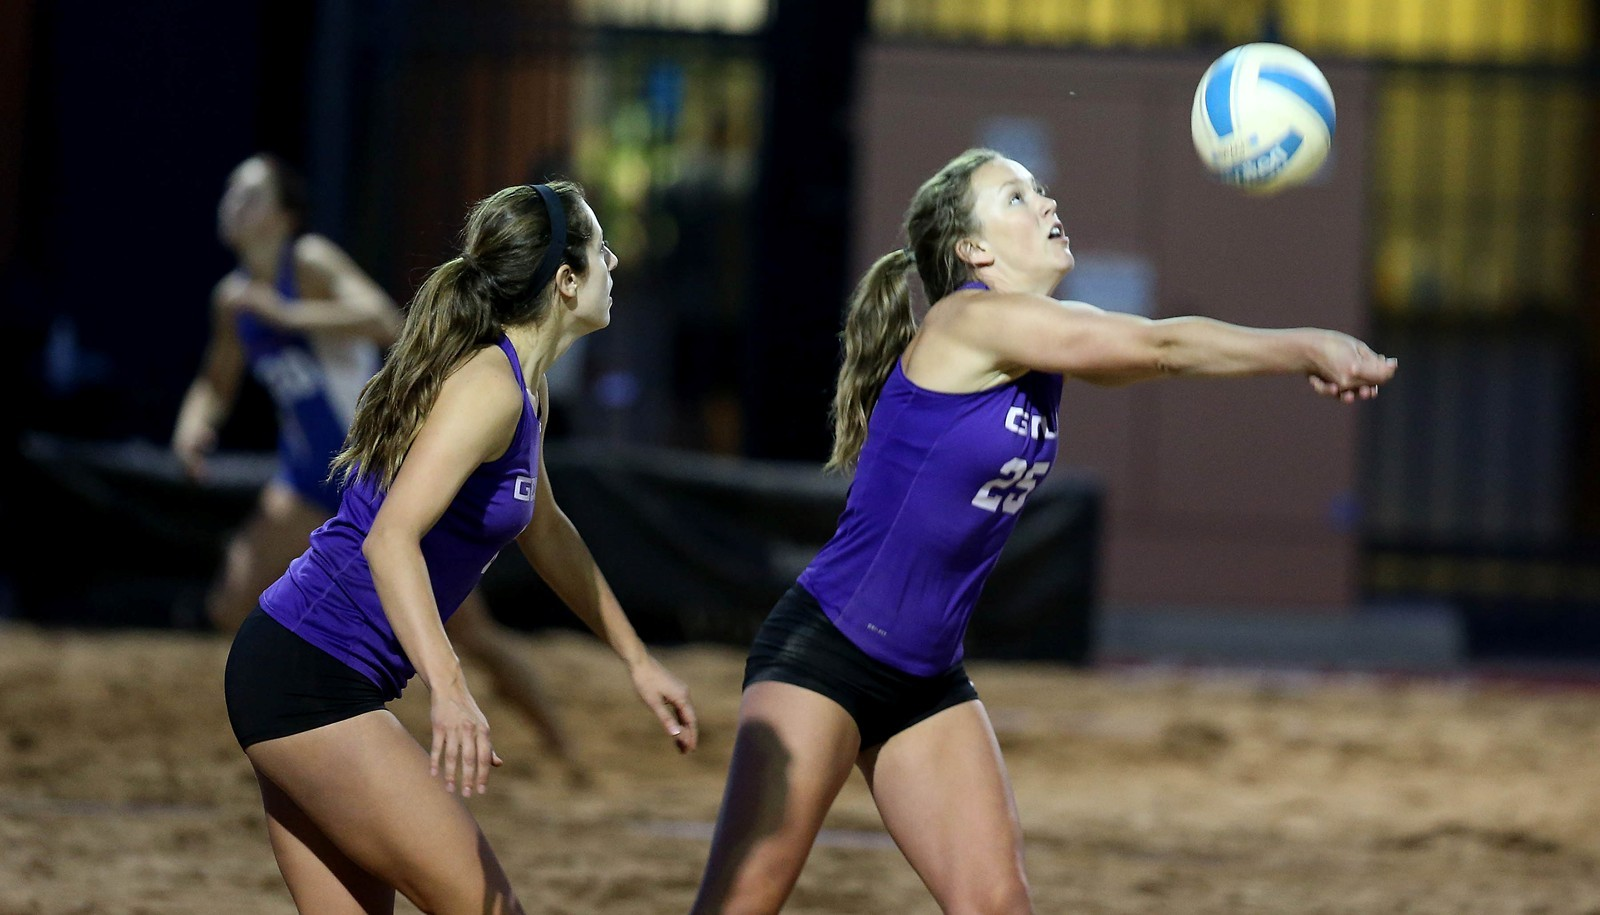 Grand Canyon University - Dugan, Phelps Battle into Semifinals, Earn All-American Accolades